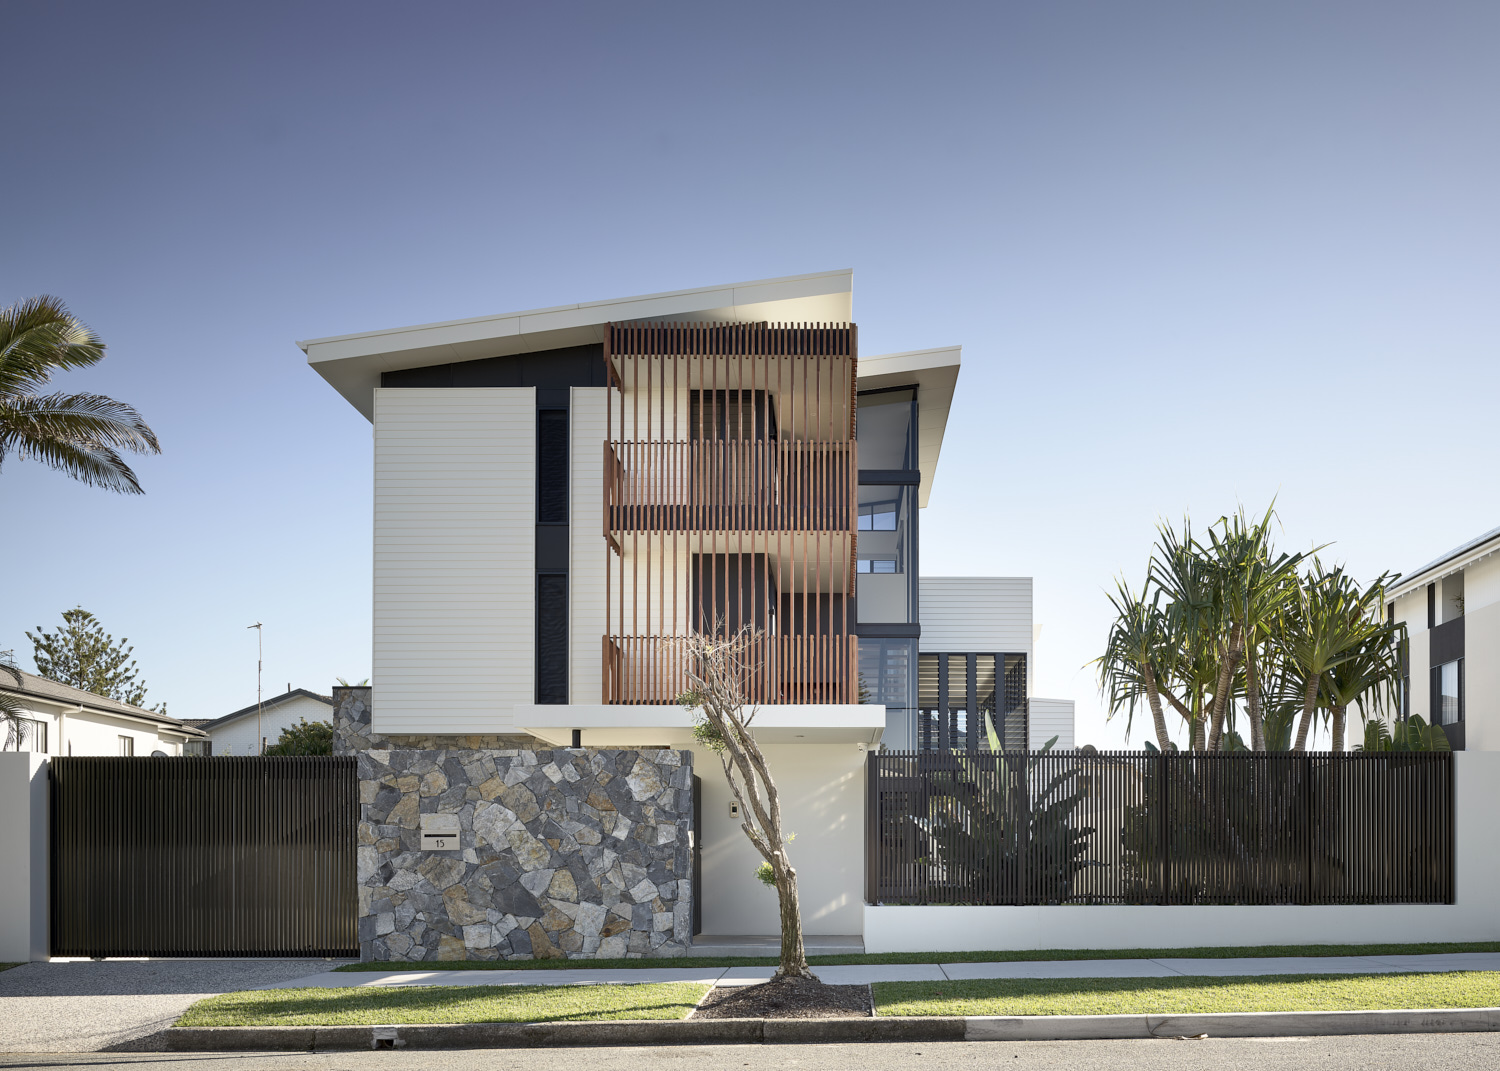 ARTHUR STREET FRONT FACADE & FRONT FENCE | PHOTO BY    SCOTT BURROWS